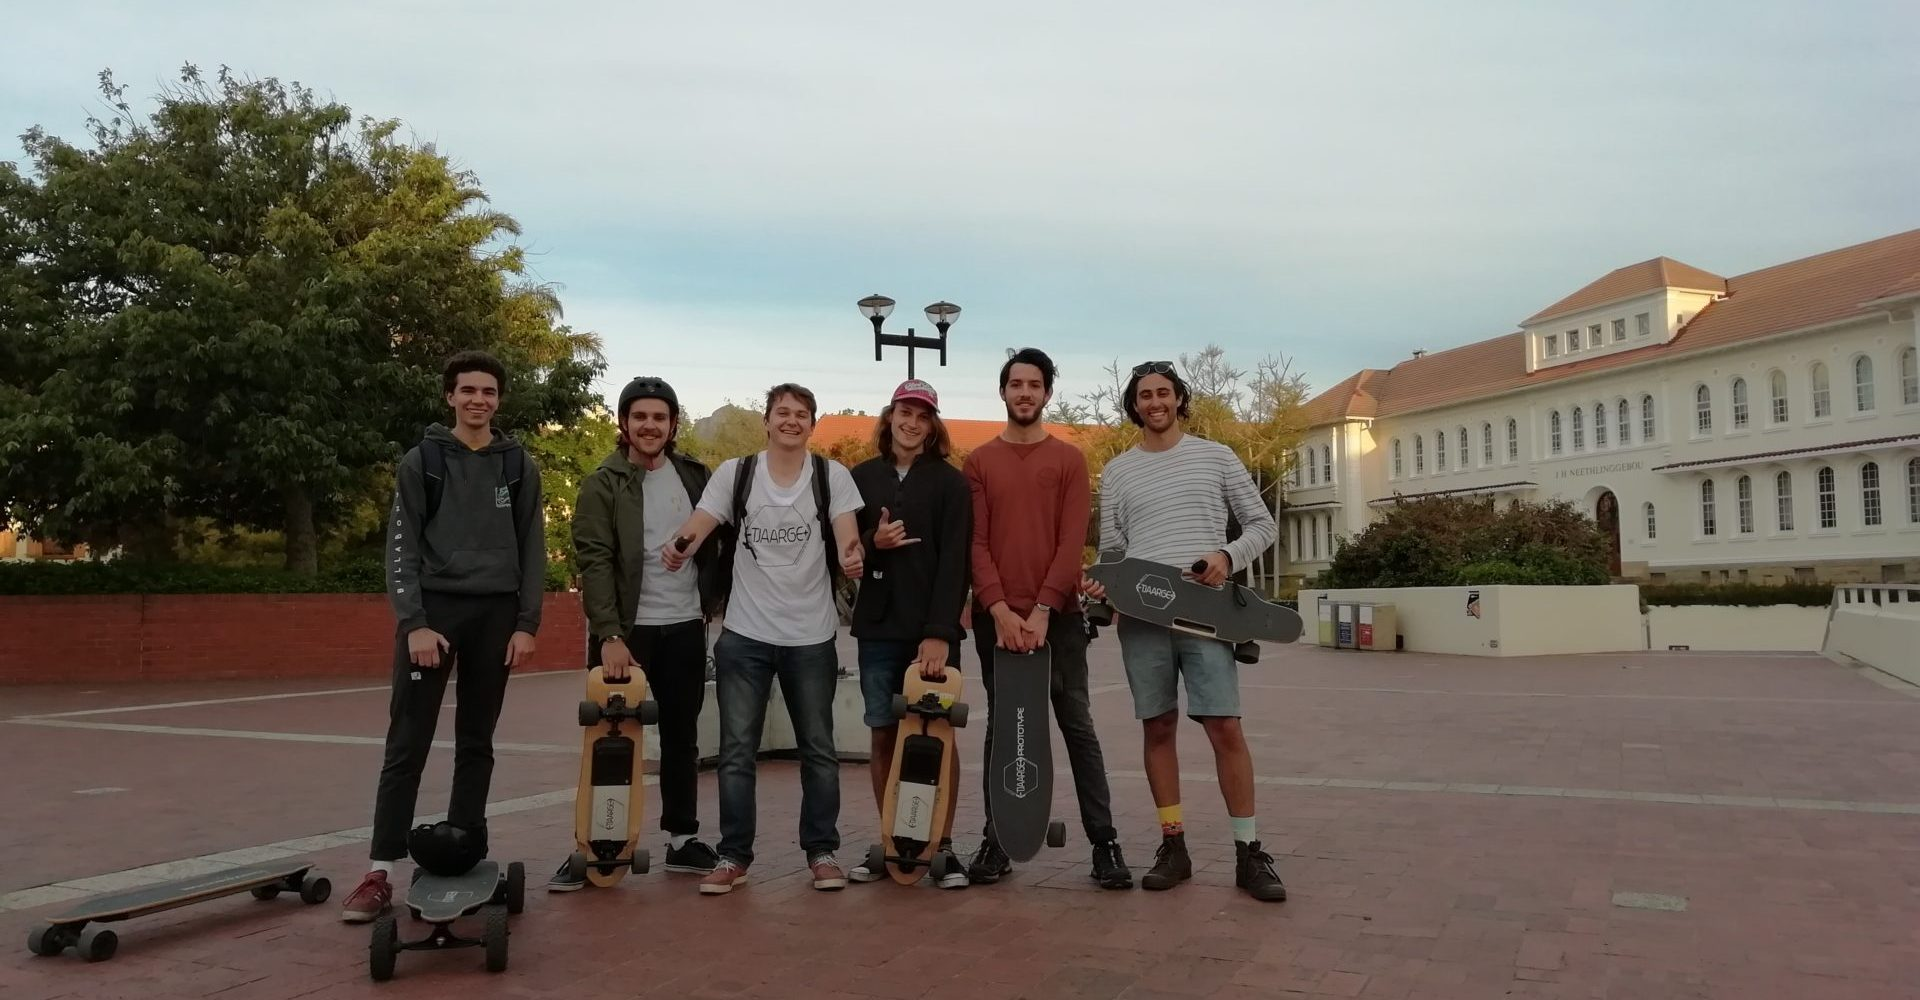 Esk8 Group Ride Stellenbosch Tjaarge Electric Skateboard